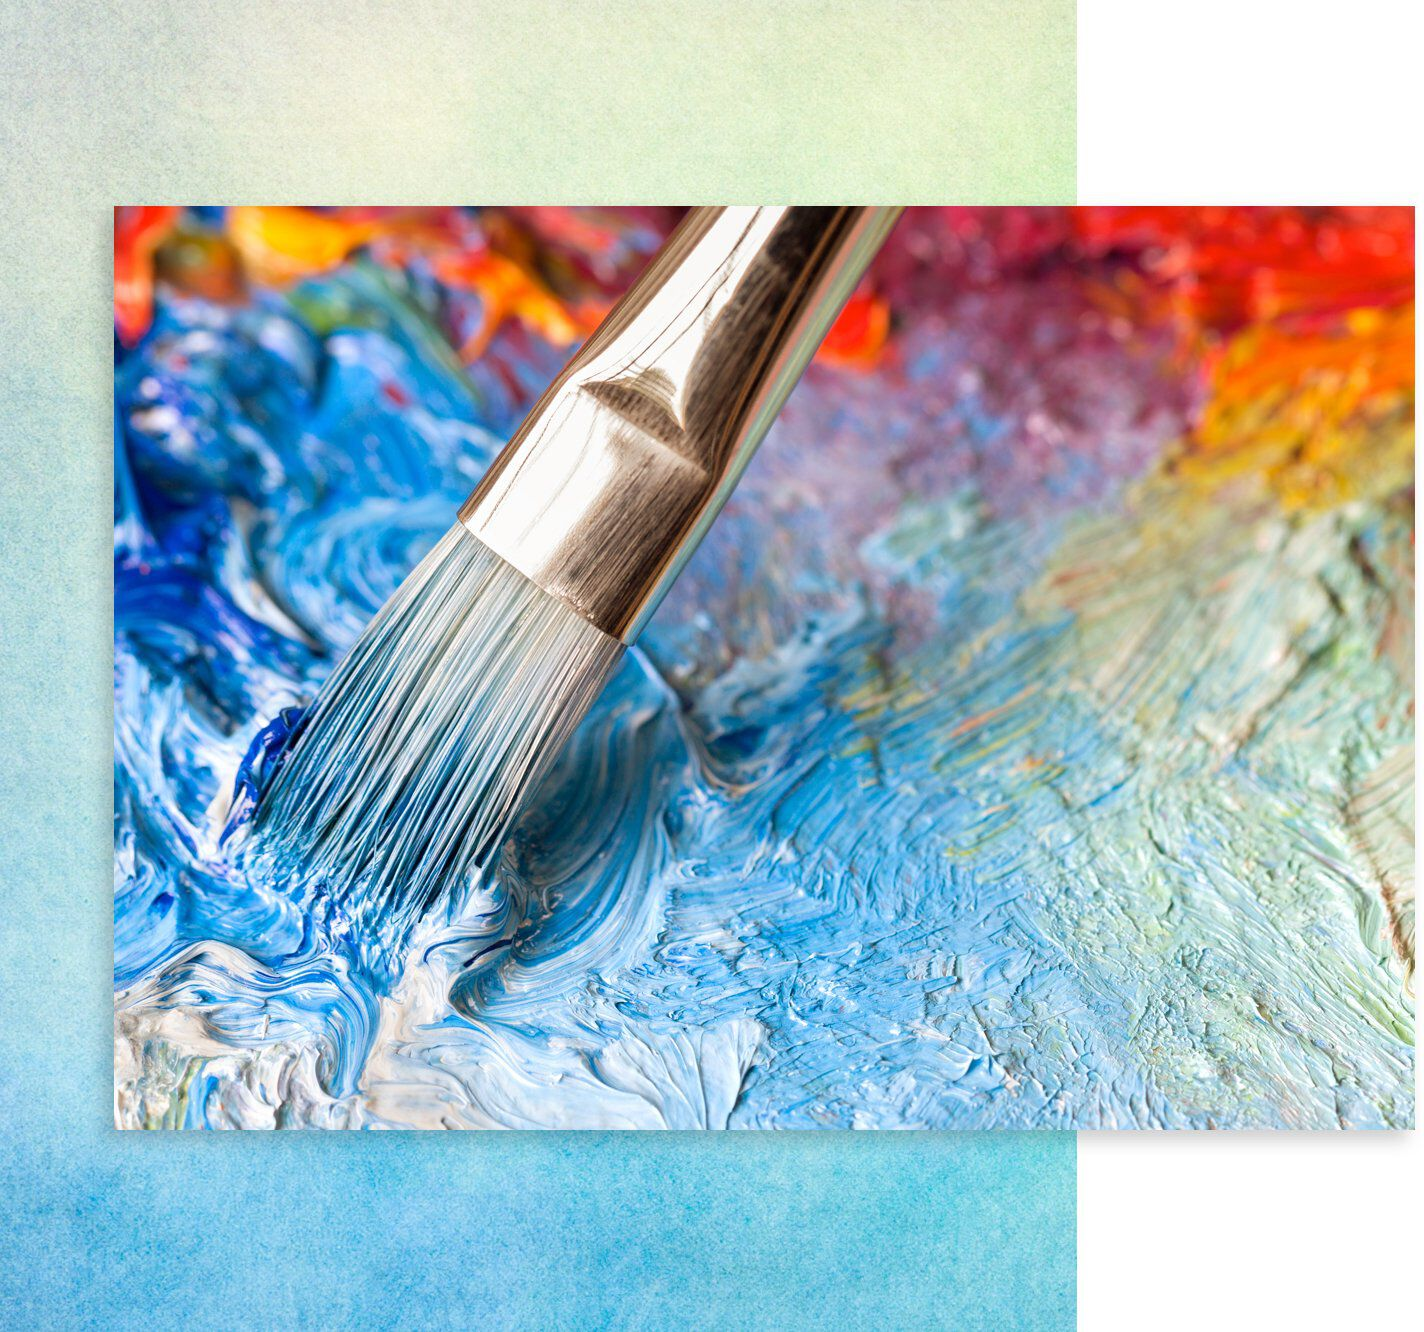 paintbrush in use banner image